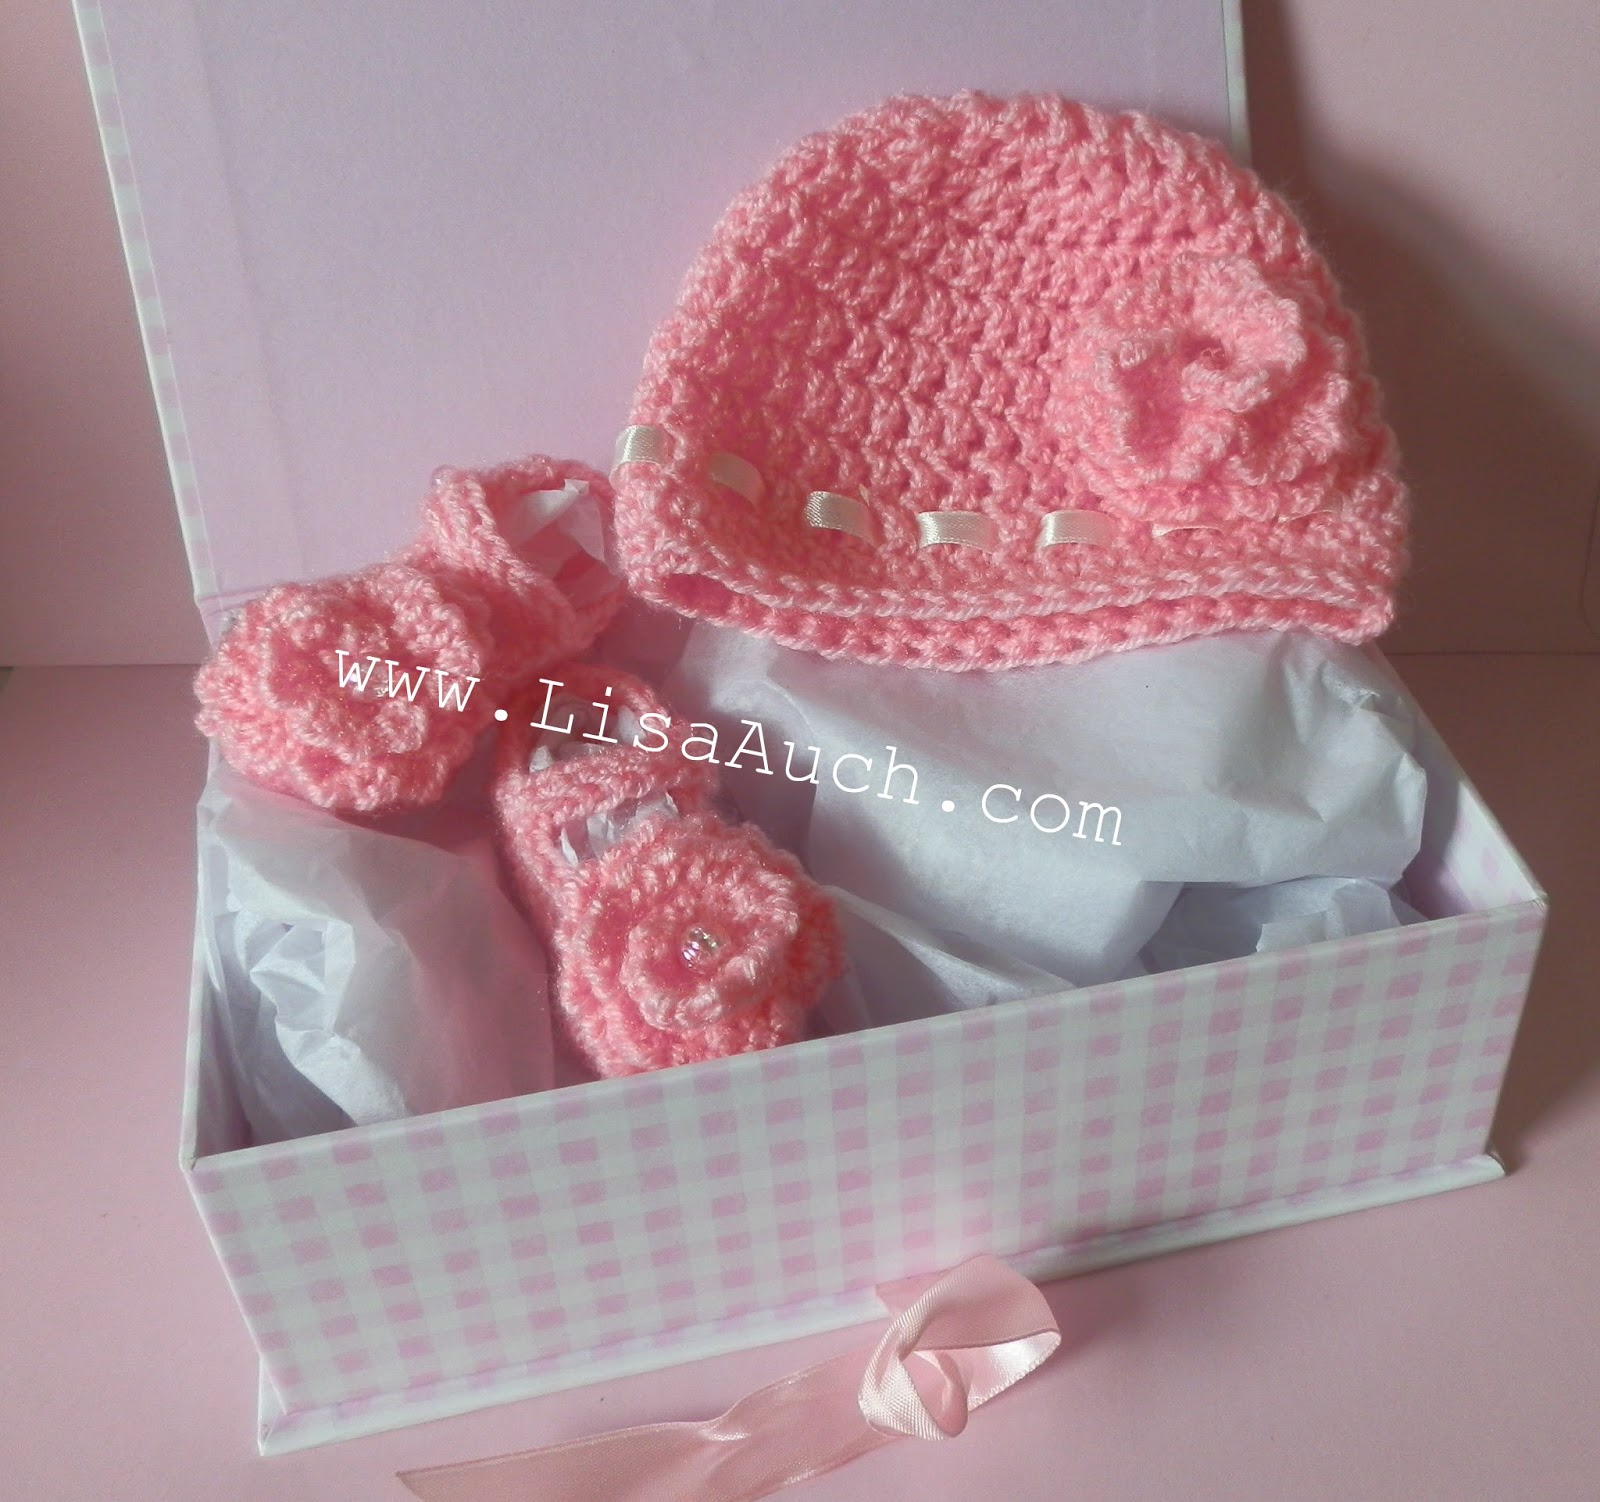 Crochet Newborn : Free Crochet Patterns for Baby Hat and Baby Bootee Shoes Set. (Newborn ...